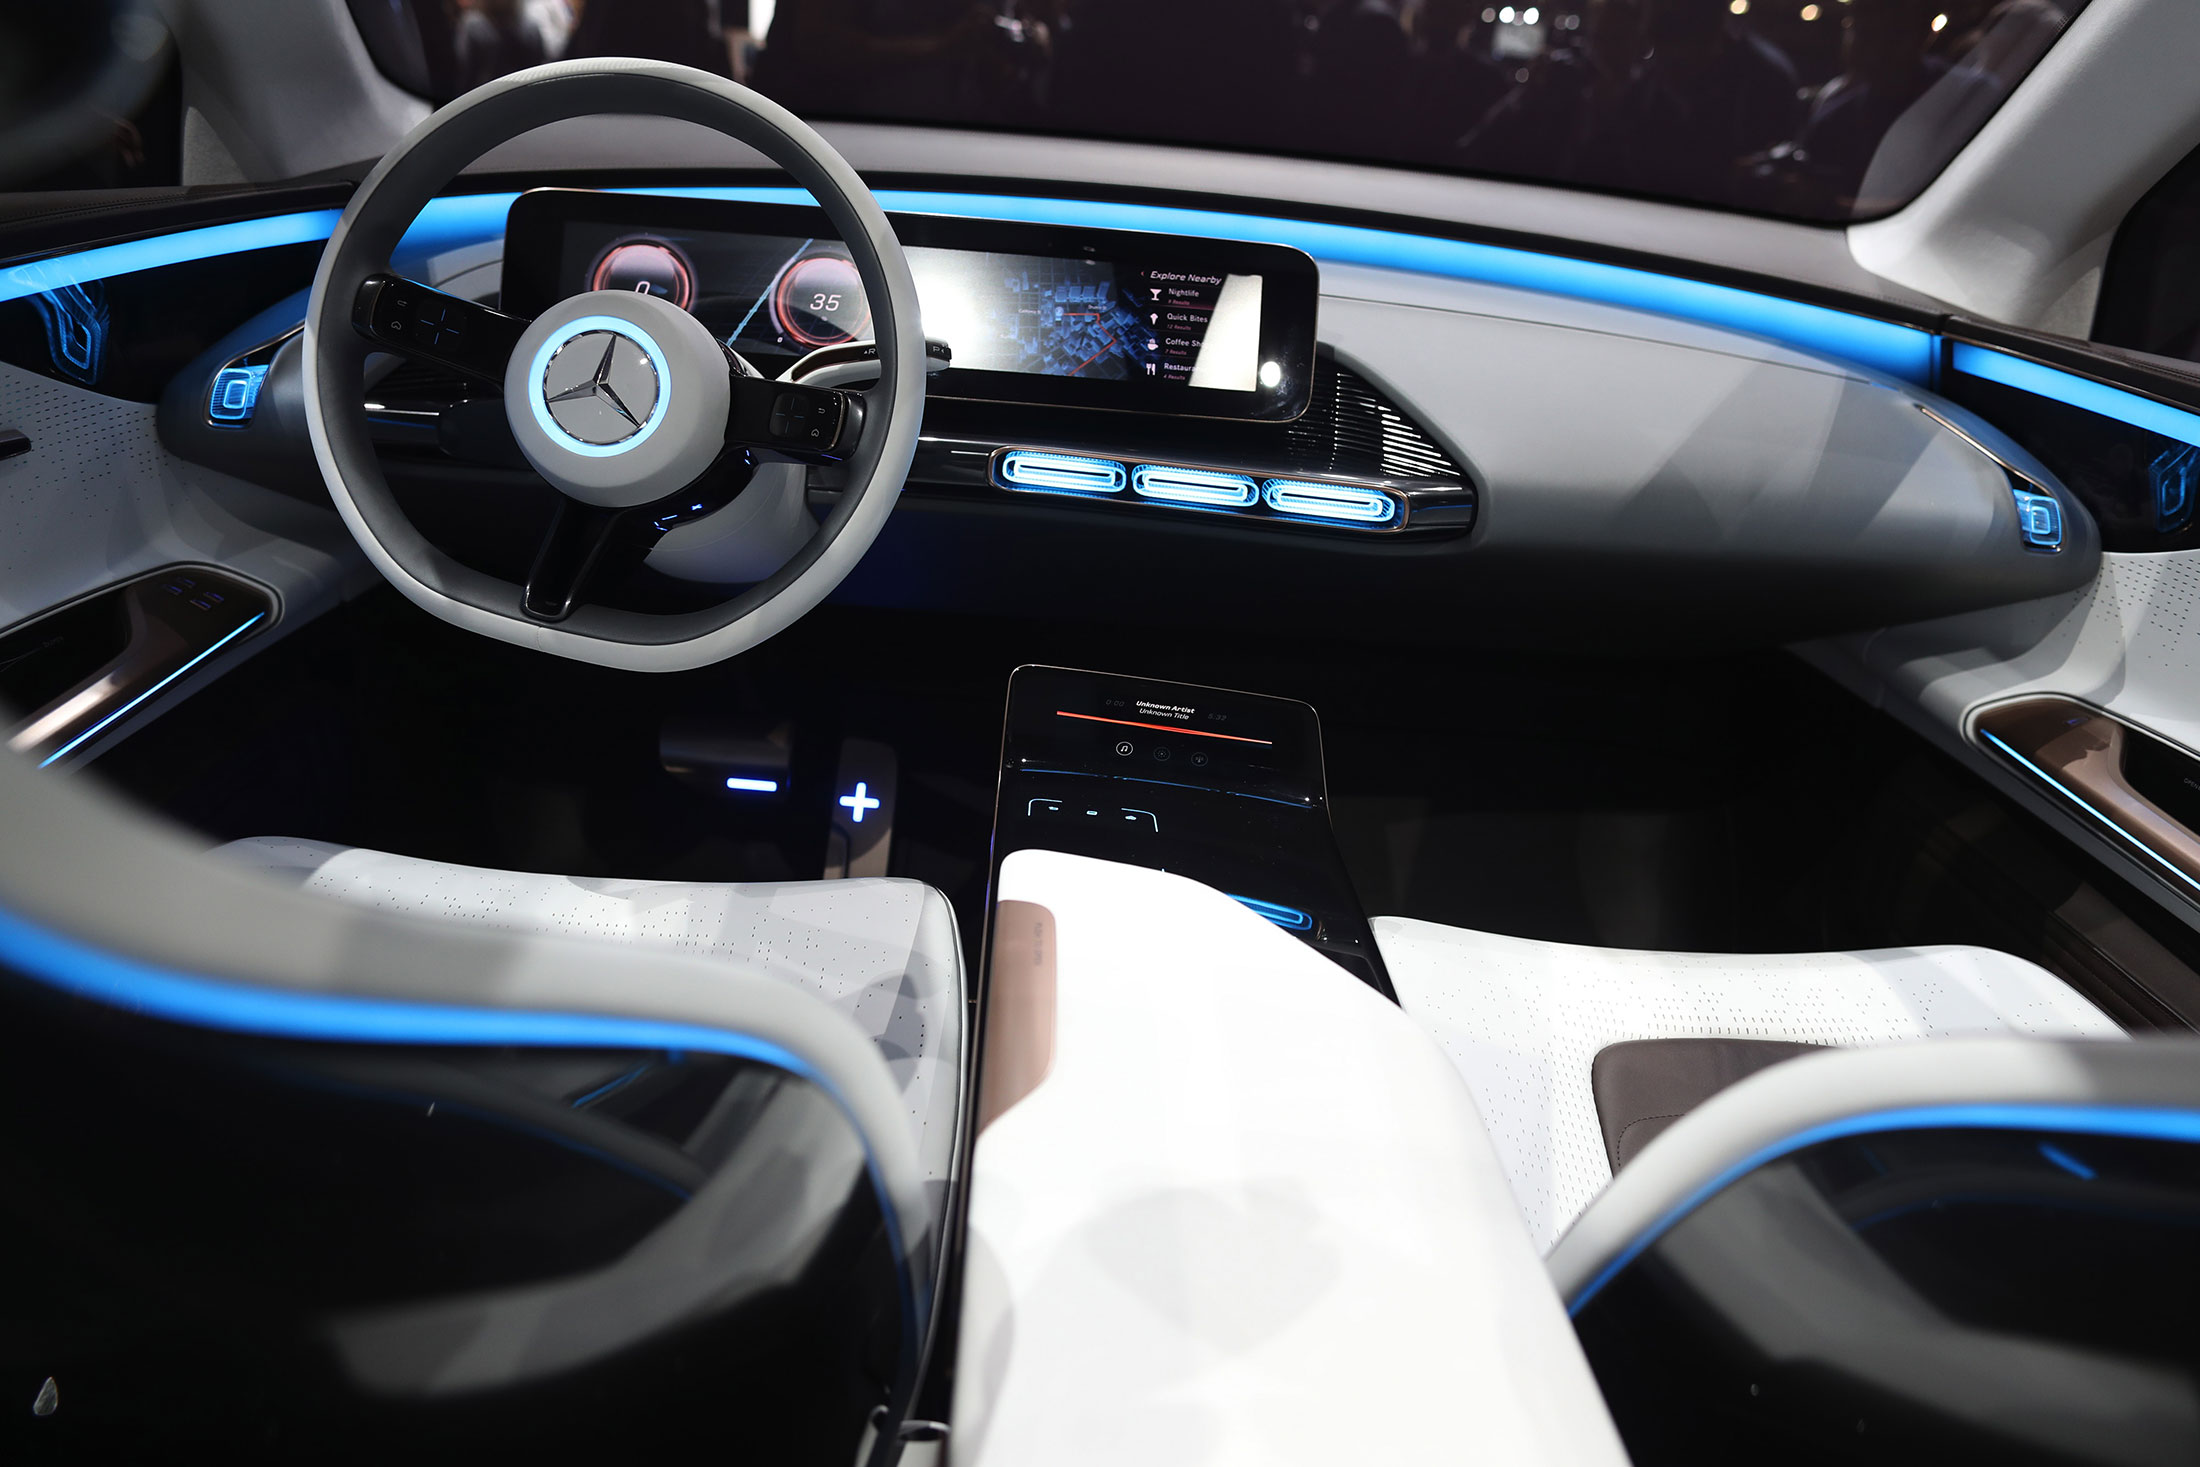 paris auto show displays industry out to get elon musk 39 s tesla bloomberg. Black Bedroom Furniture Sets. Home Design Ideas